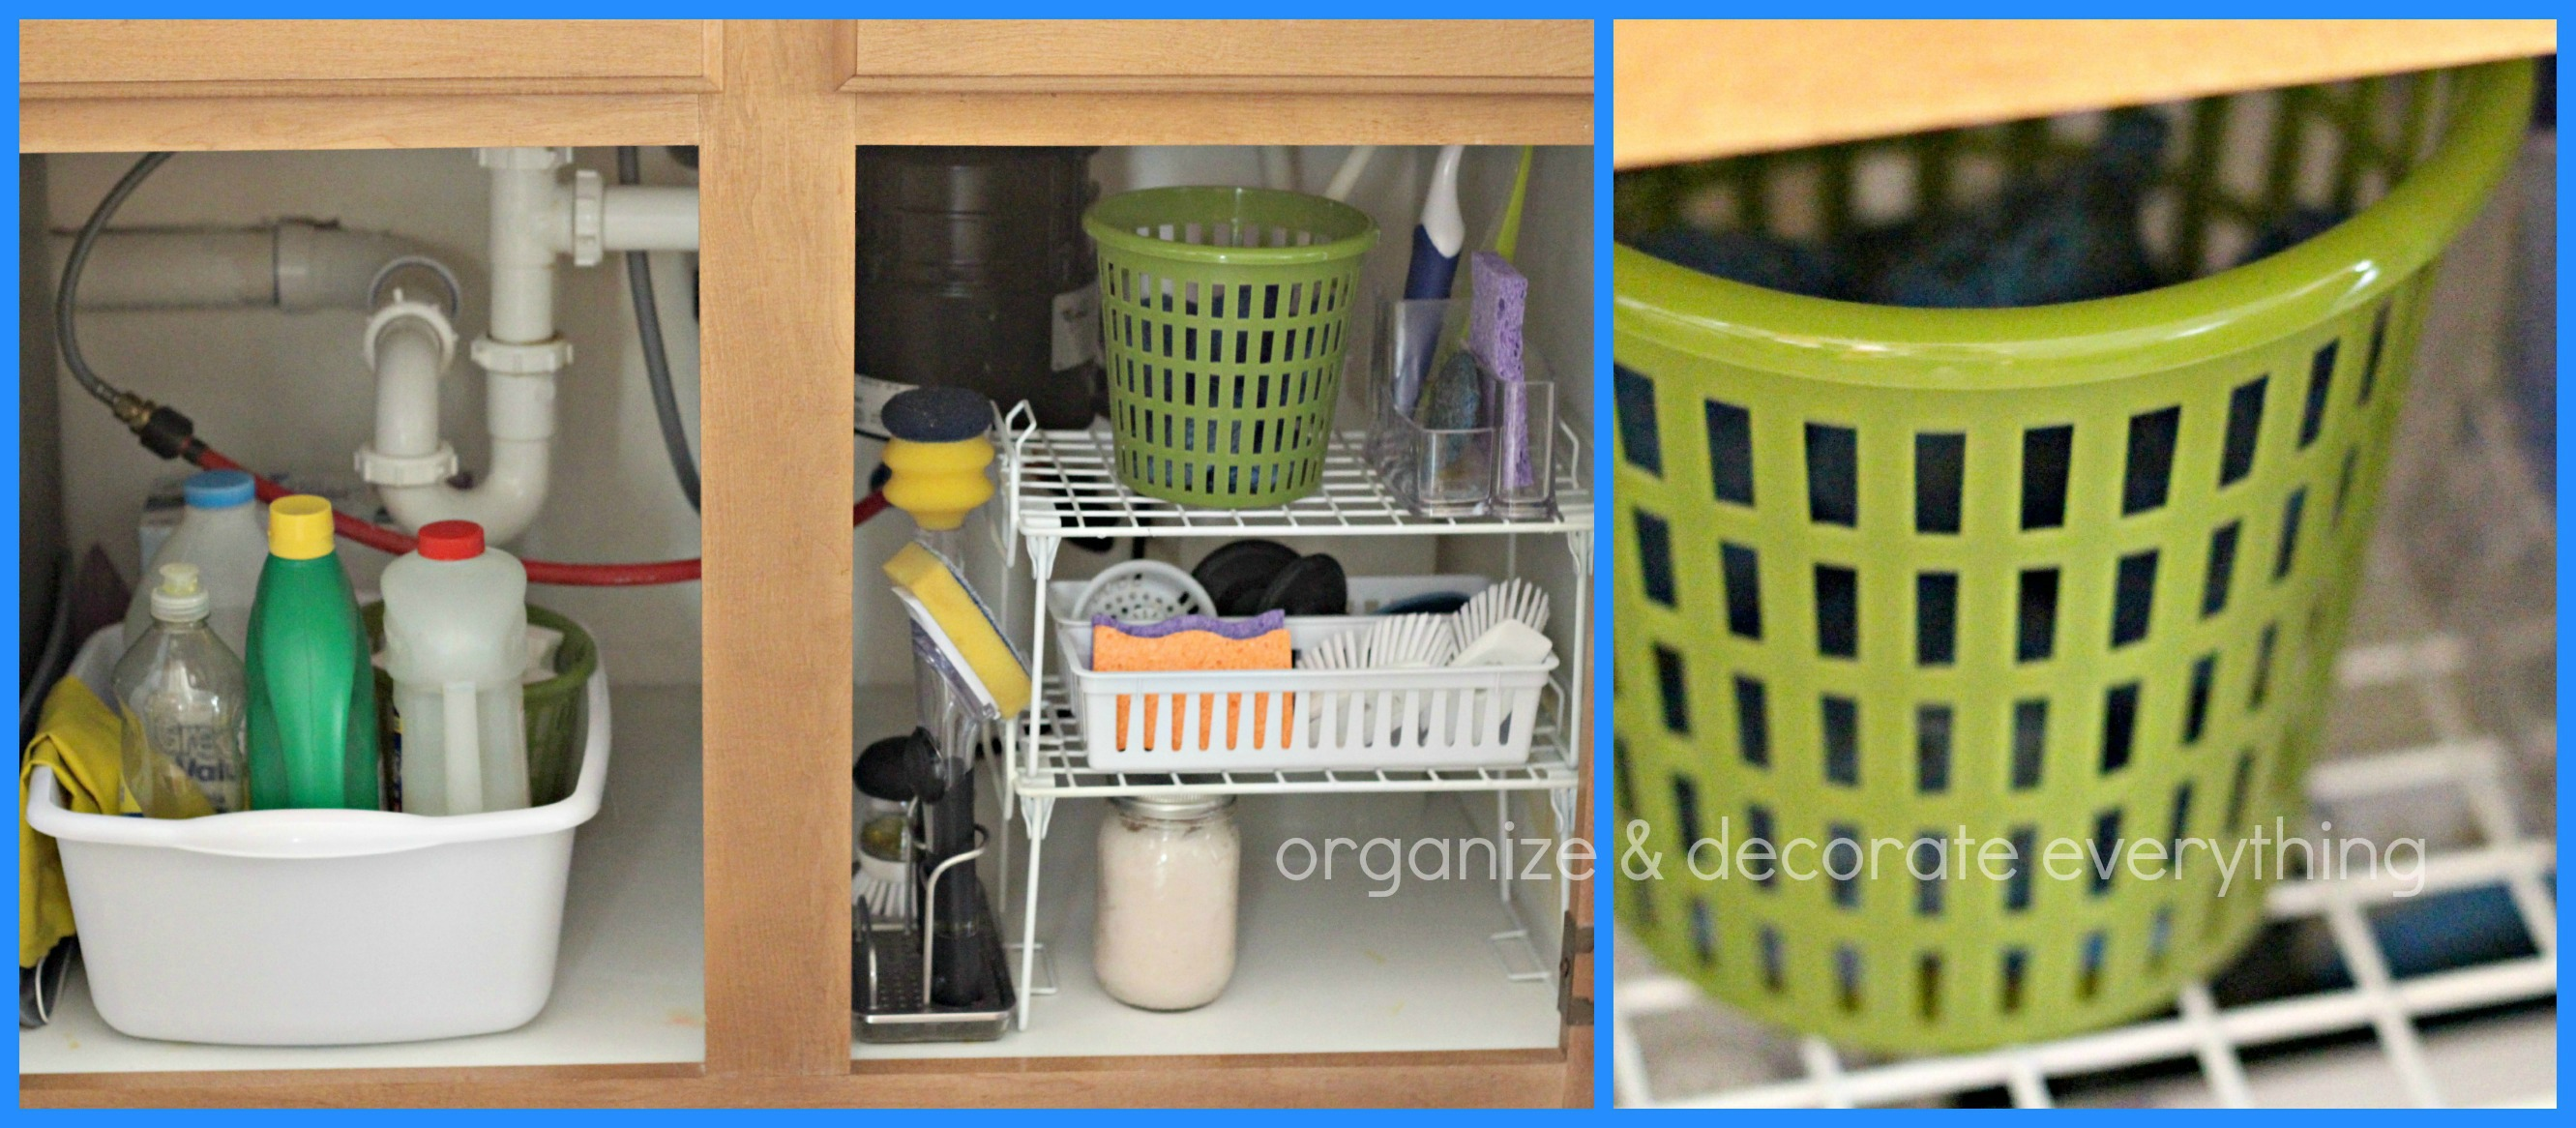 For Organizing Kitchen Organize The Kitchen With Dollar General Organize And Decorate